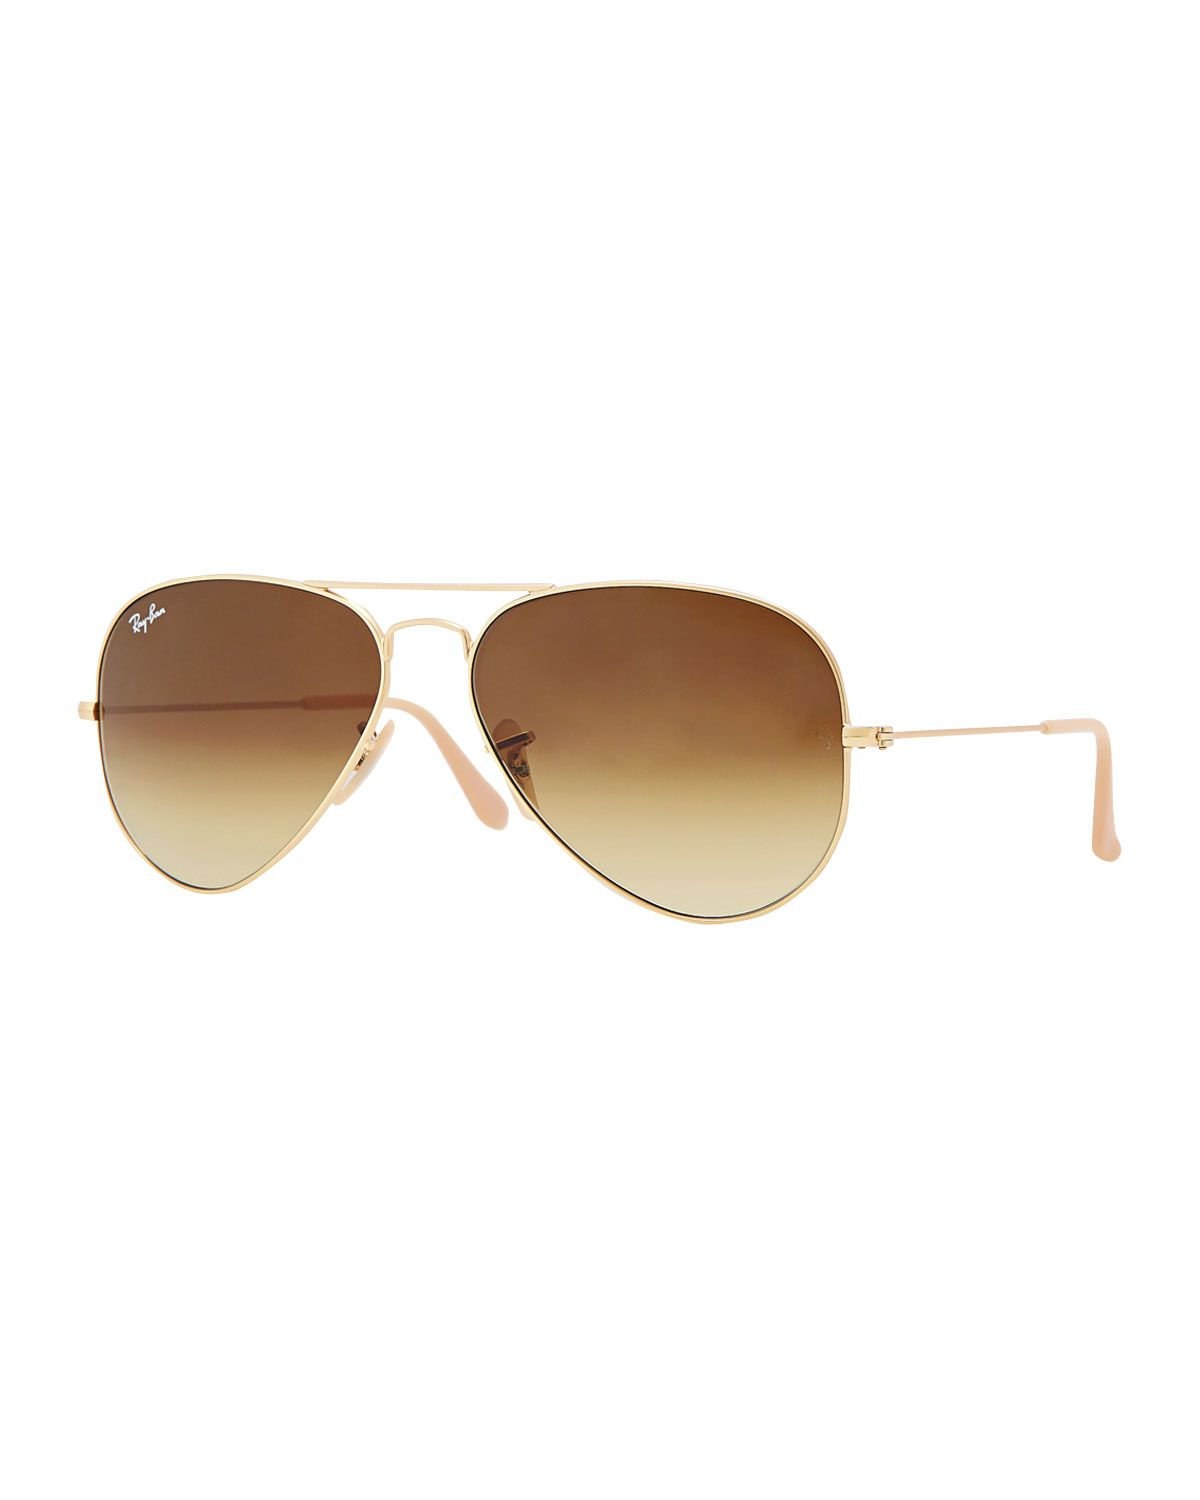 nike sunglasses womens for sale